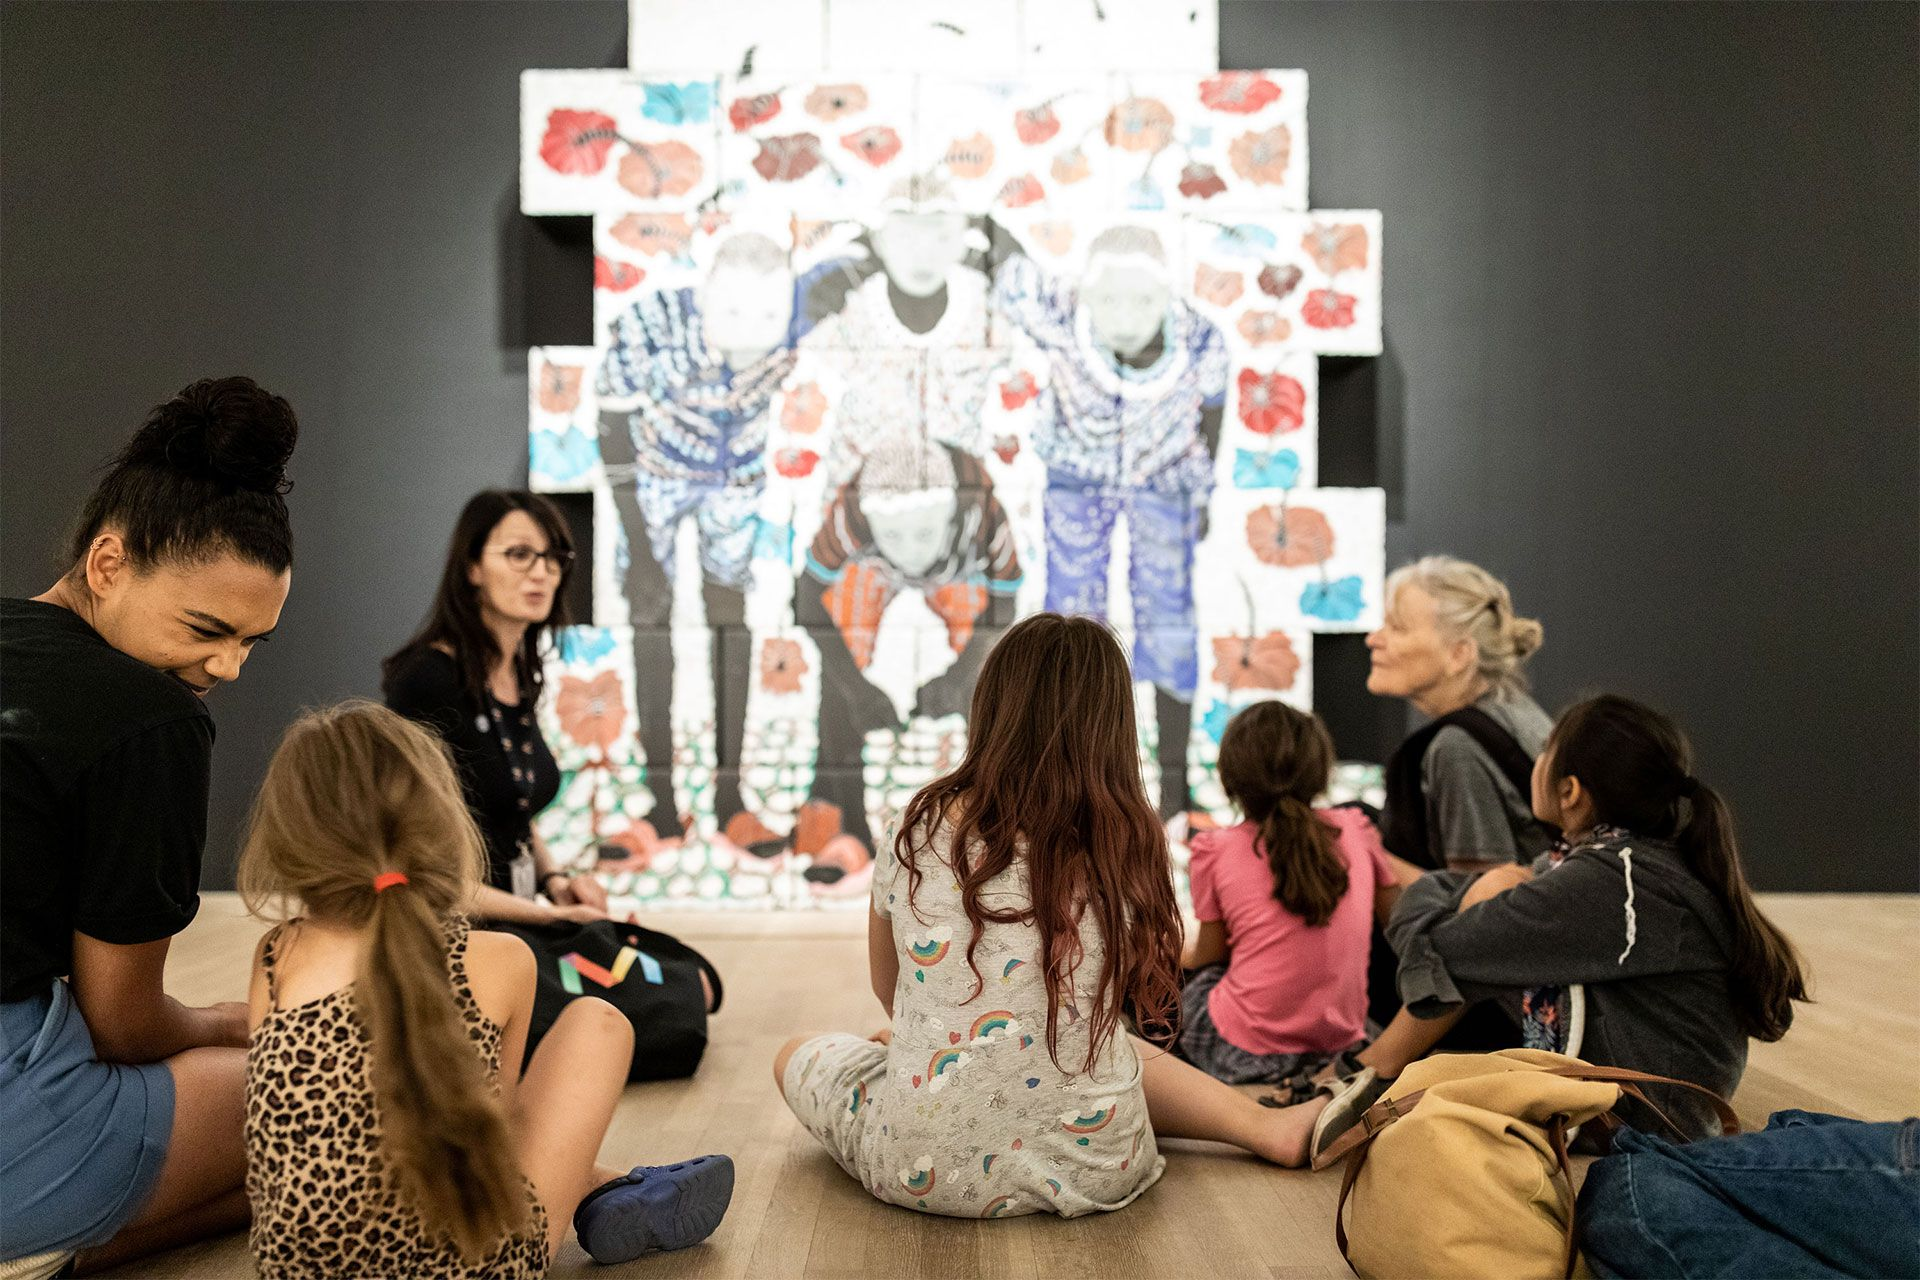 A group of children listen to a mediator in front of a work. Photo © Mikaël Theimer (MKL)